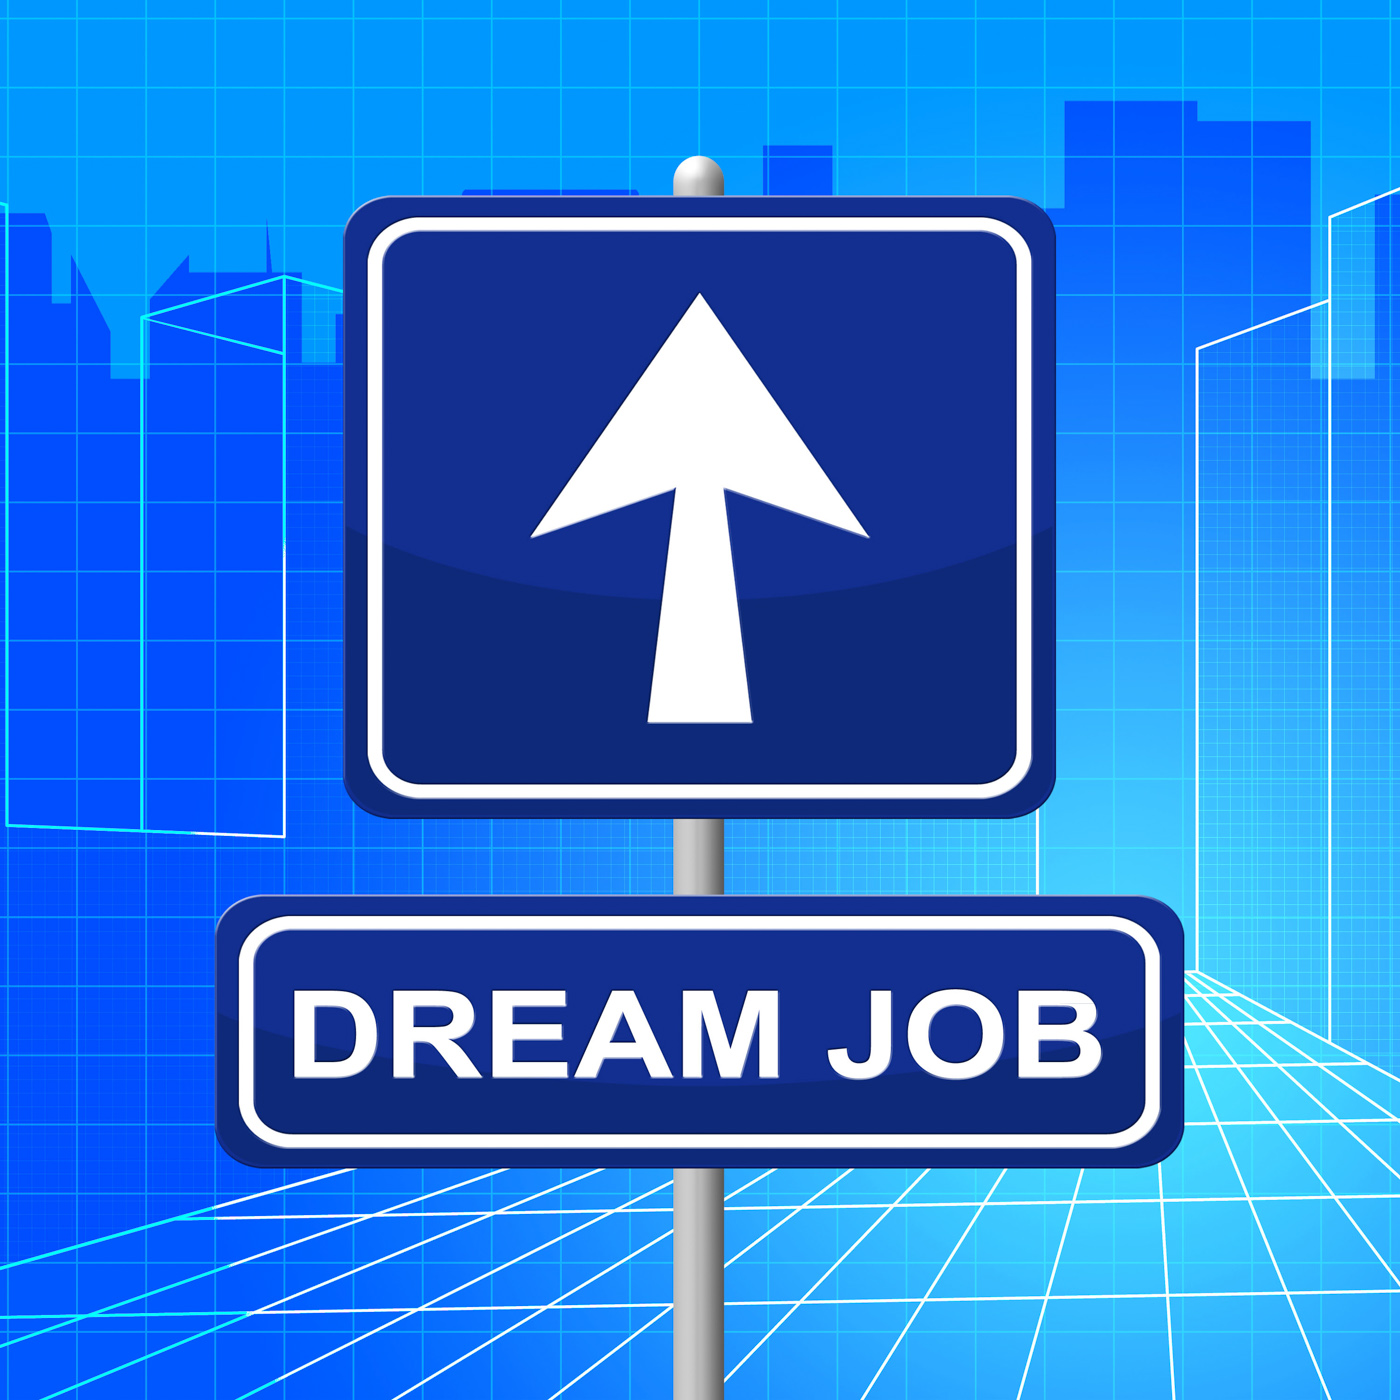 Dream Job Means Recruitment Arrow And Display, Advertisement, Plans, Jobs, Message, HQ Photo